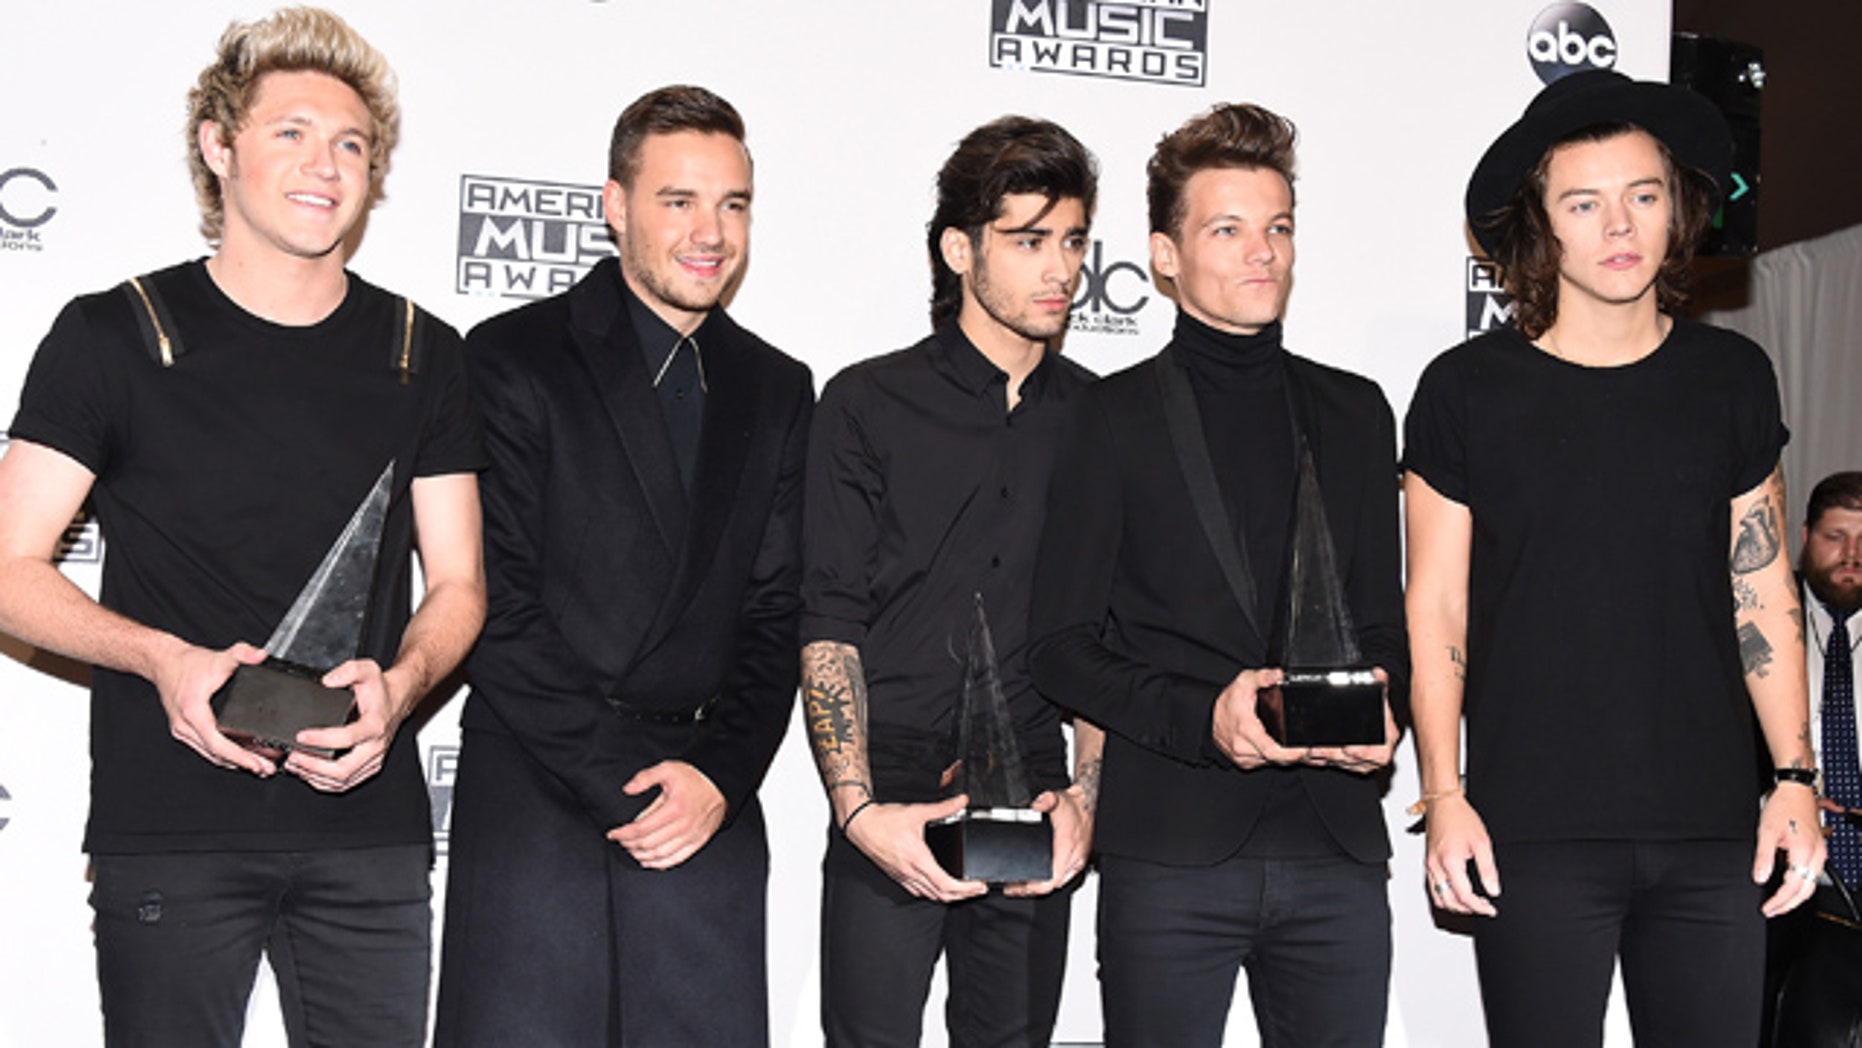 November 23, 2014: Niall Horan, Liam Payne, Zayn Malik, Louis Tomlinson and Harry Styles, of One Direction, pose in the press room with the awards for artist of the year, favorite pop/rock album for 'Midnight Memories' and pop/rock band, duo or group at the 42nd annual American Music Awards at Nokia Theatre L.A. Live in Los Angeles. (Photo by Jordan Strauss/Invision/AP)